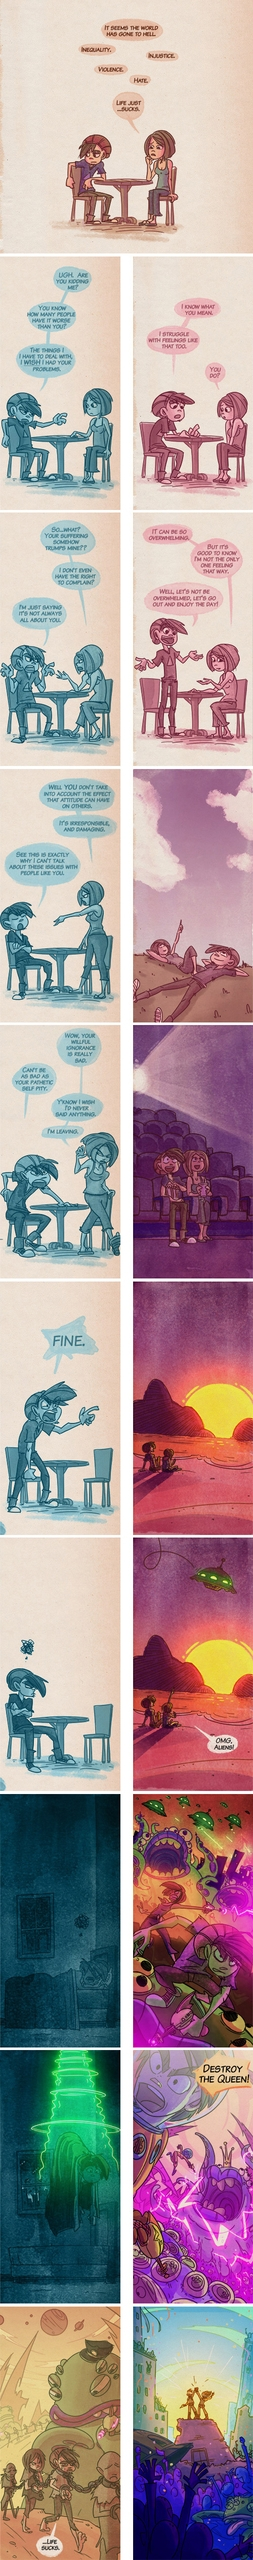 Good - comics, empathy, aliens - nateswinehart | ello